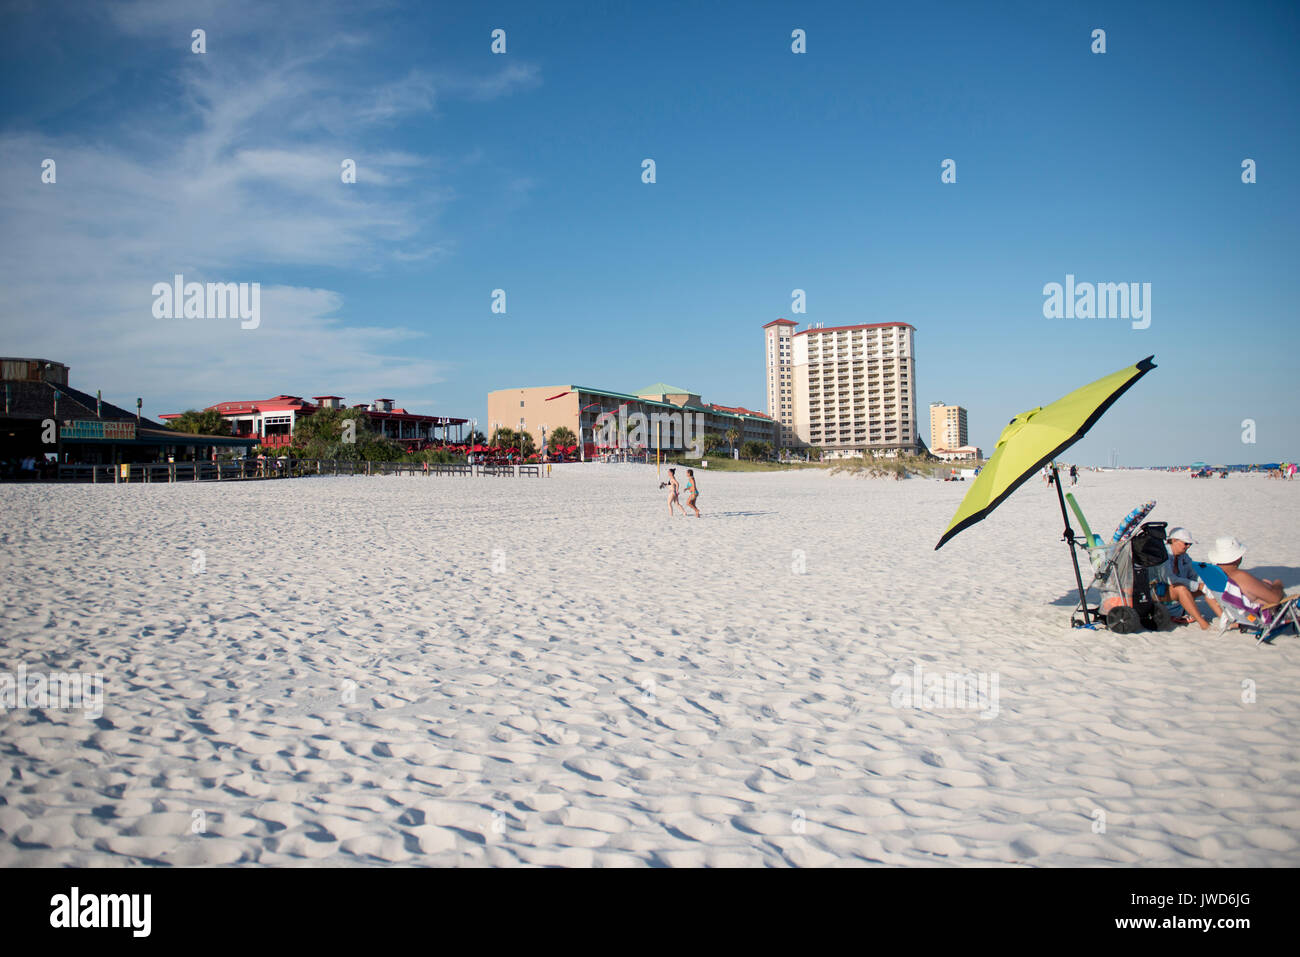 A View Of Shops Restaurants Bars And Hotels Along Casino Beach In